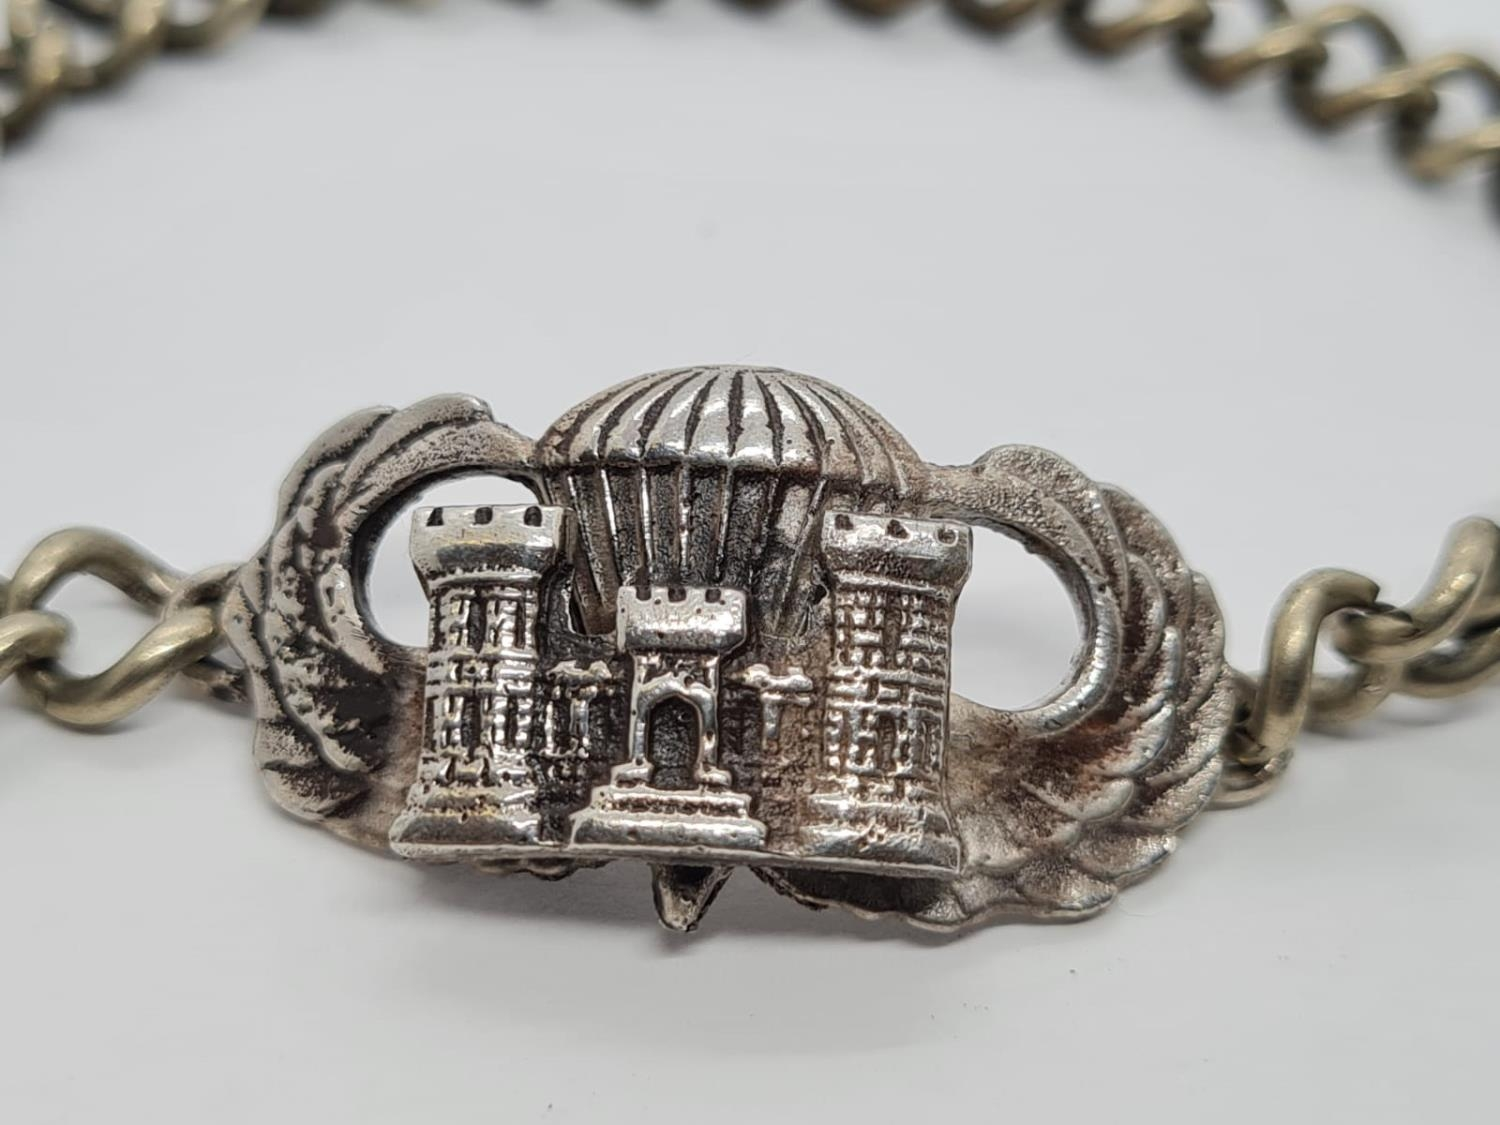 WW2 Solid Silver US Airborne Recon Jump Wings on a silver-plated wrist chain. - Image 2 of 3